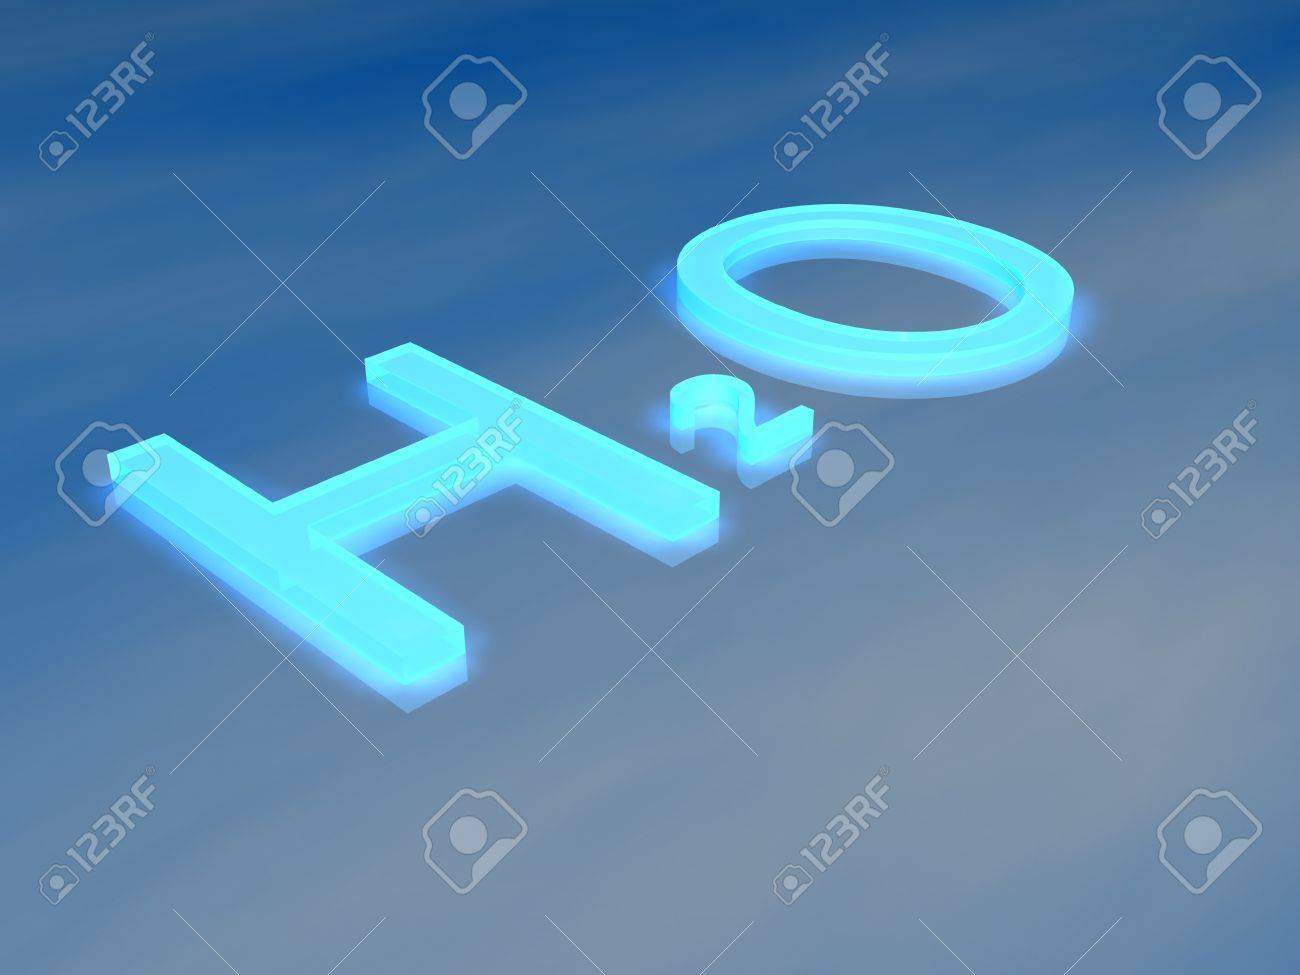 Chemical symbol of water h2o stock photo picture and royalty free chemical symbol of water h2o stock photo 14044099 buycottarizona Choice Image